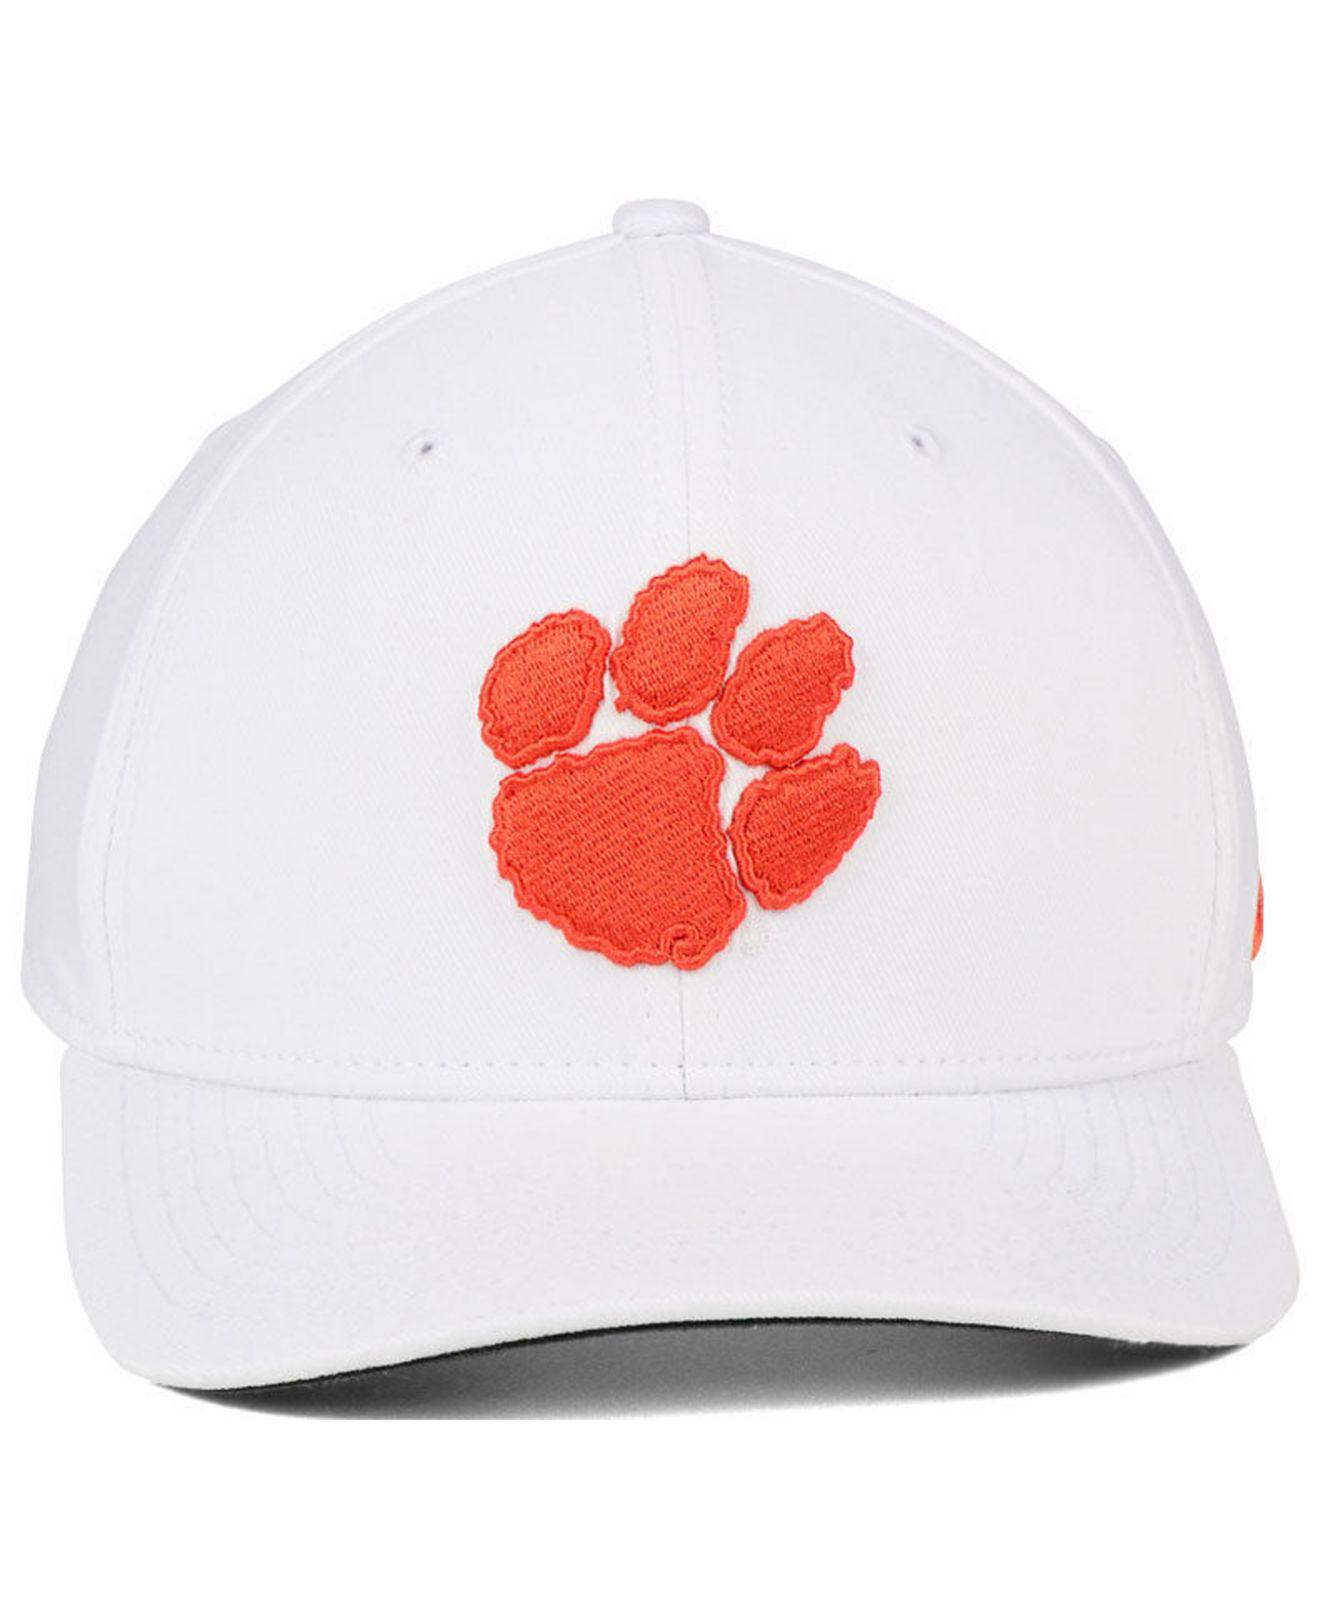 save off 62421 ff638 Nike Clemson Tigers Classic Swoosh Cap in White for Men - Lyst